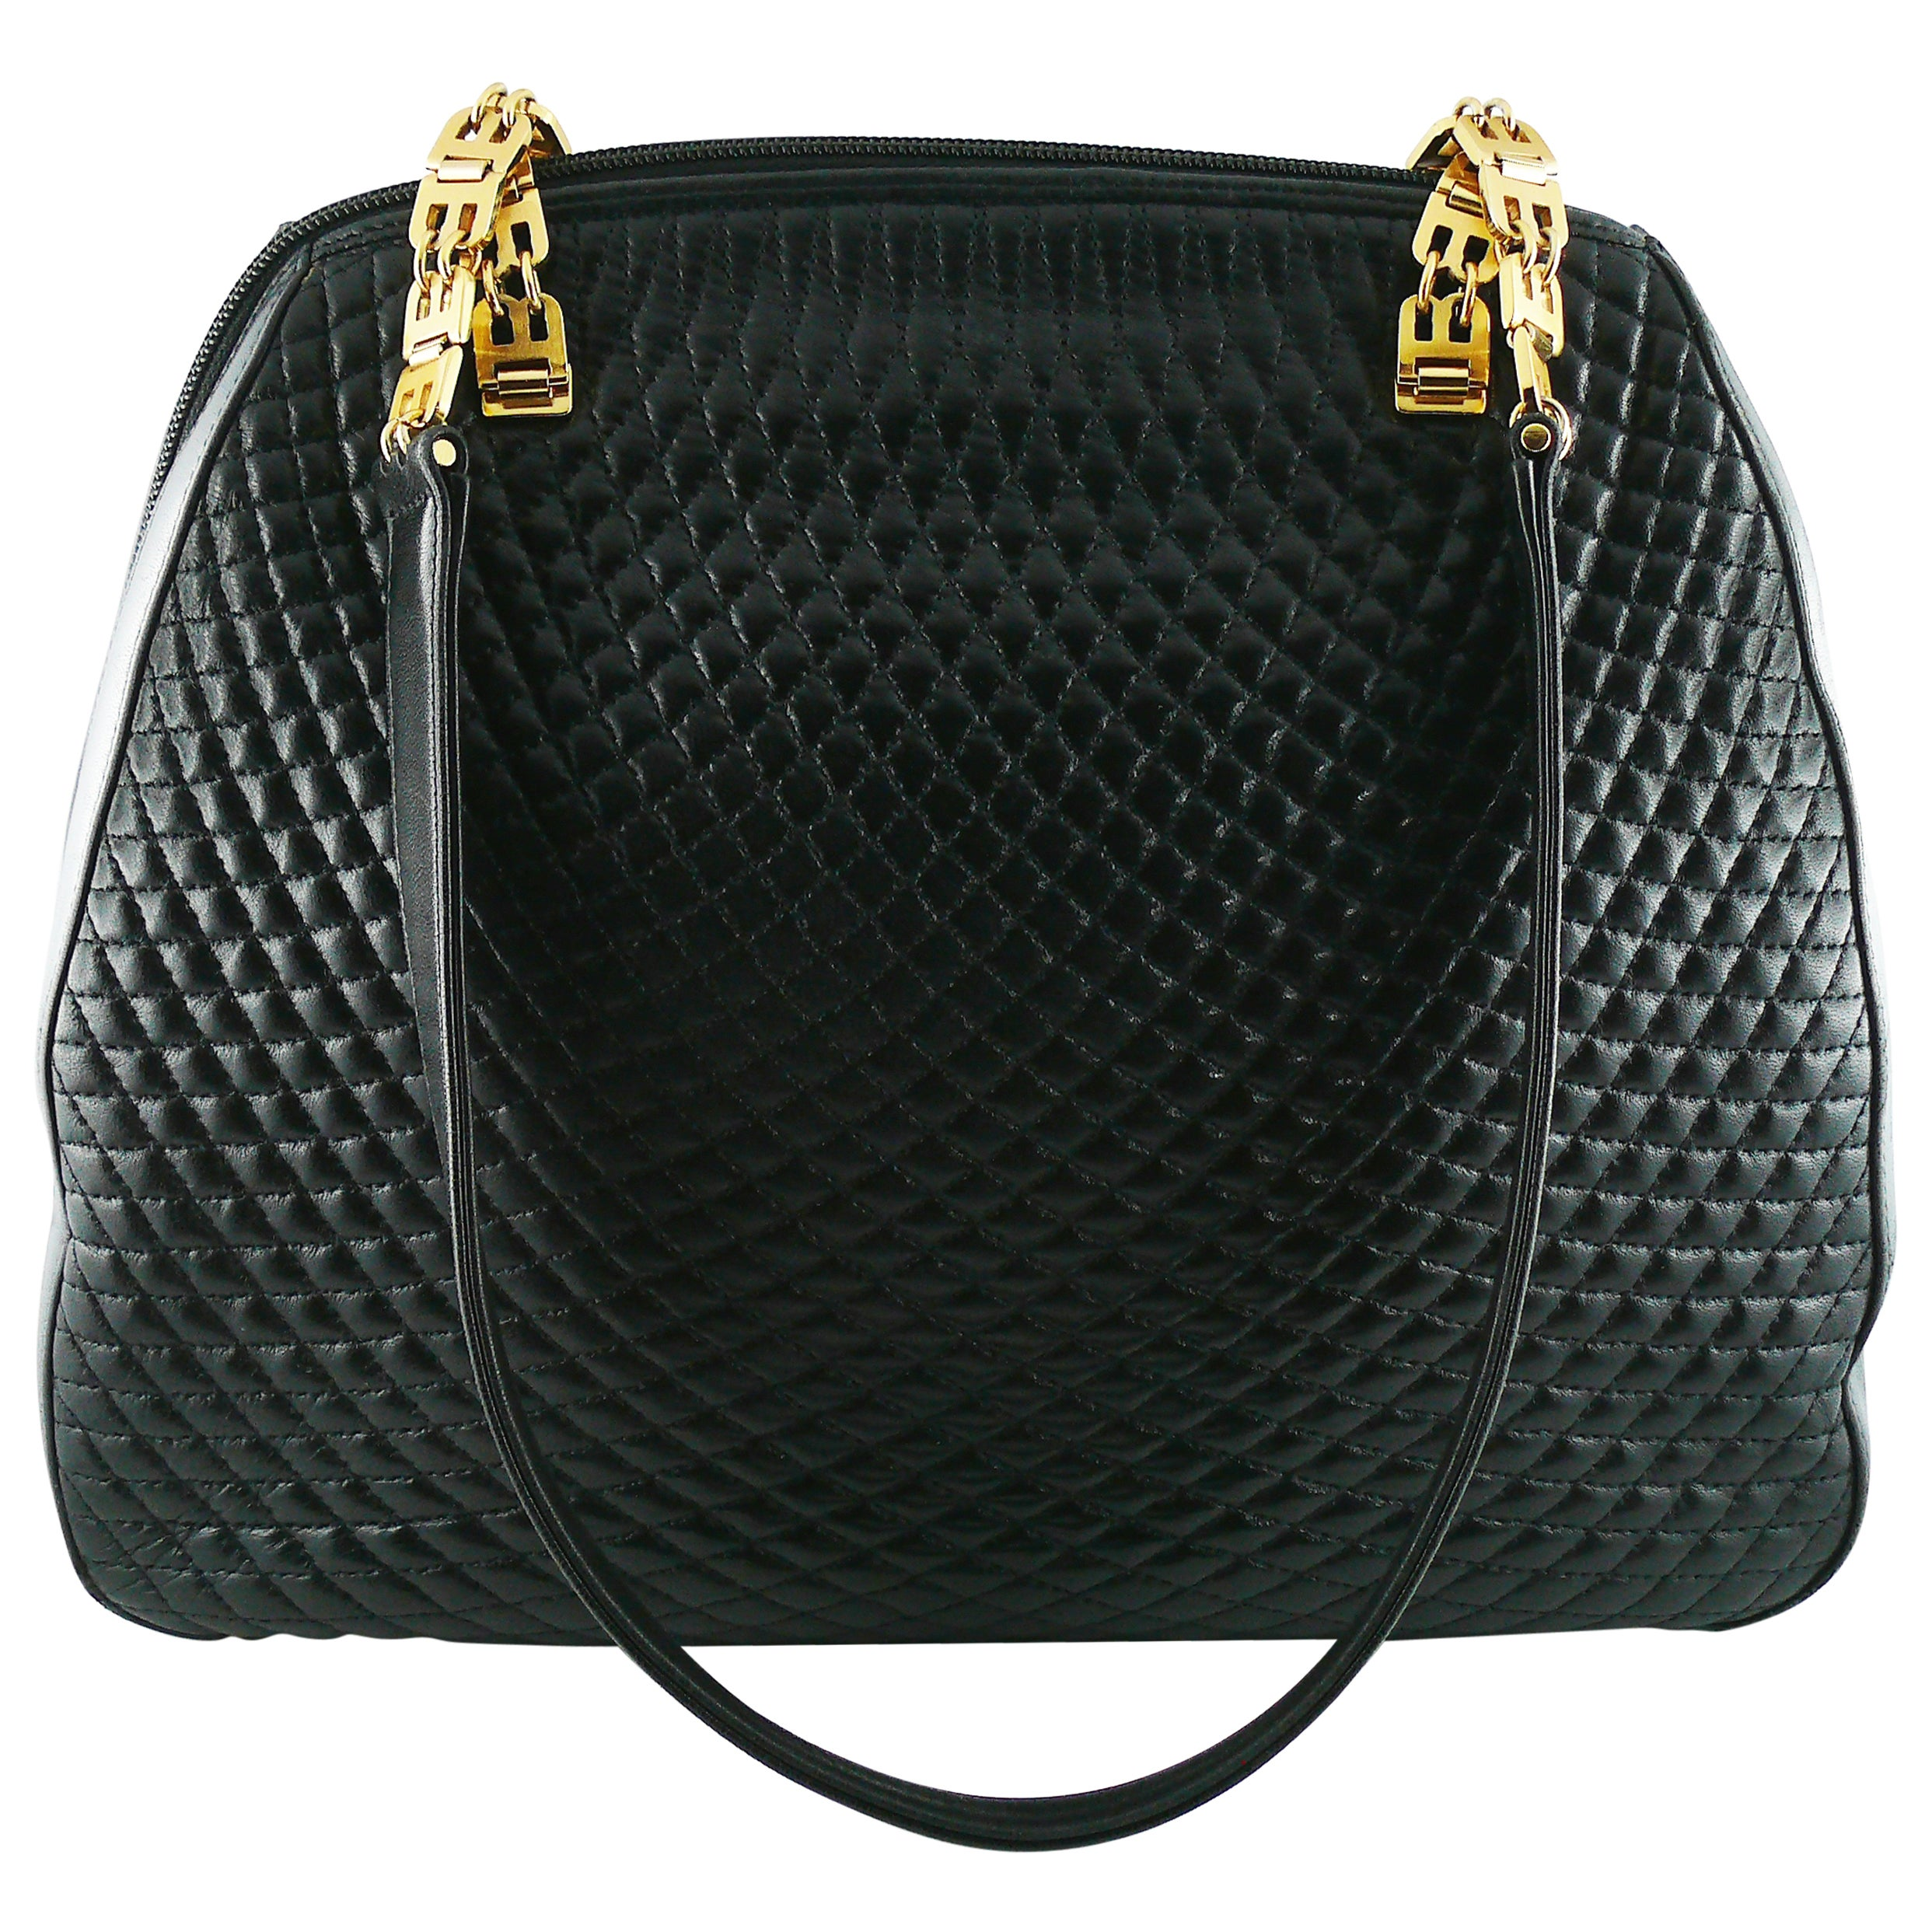 33c69105aa5b Bally Vintage Quilted Black Leather Shoulder Gold Chain Bag at 1stdibs